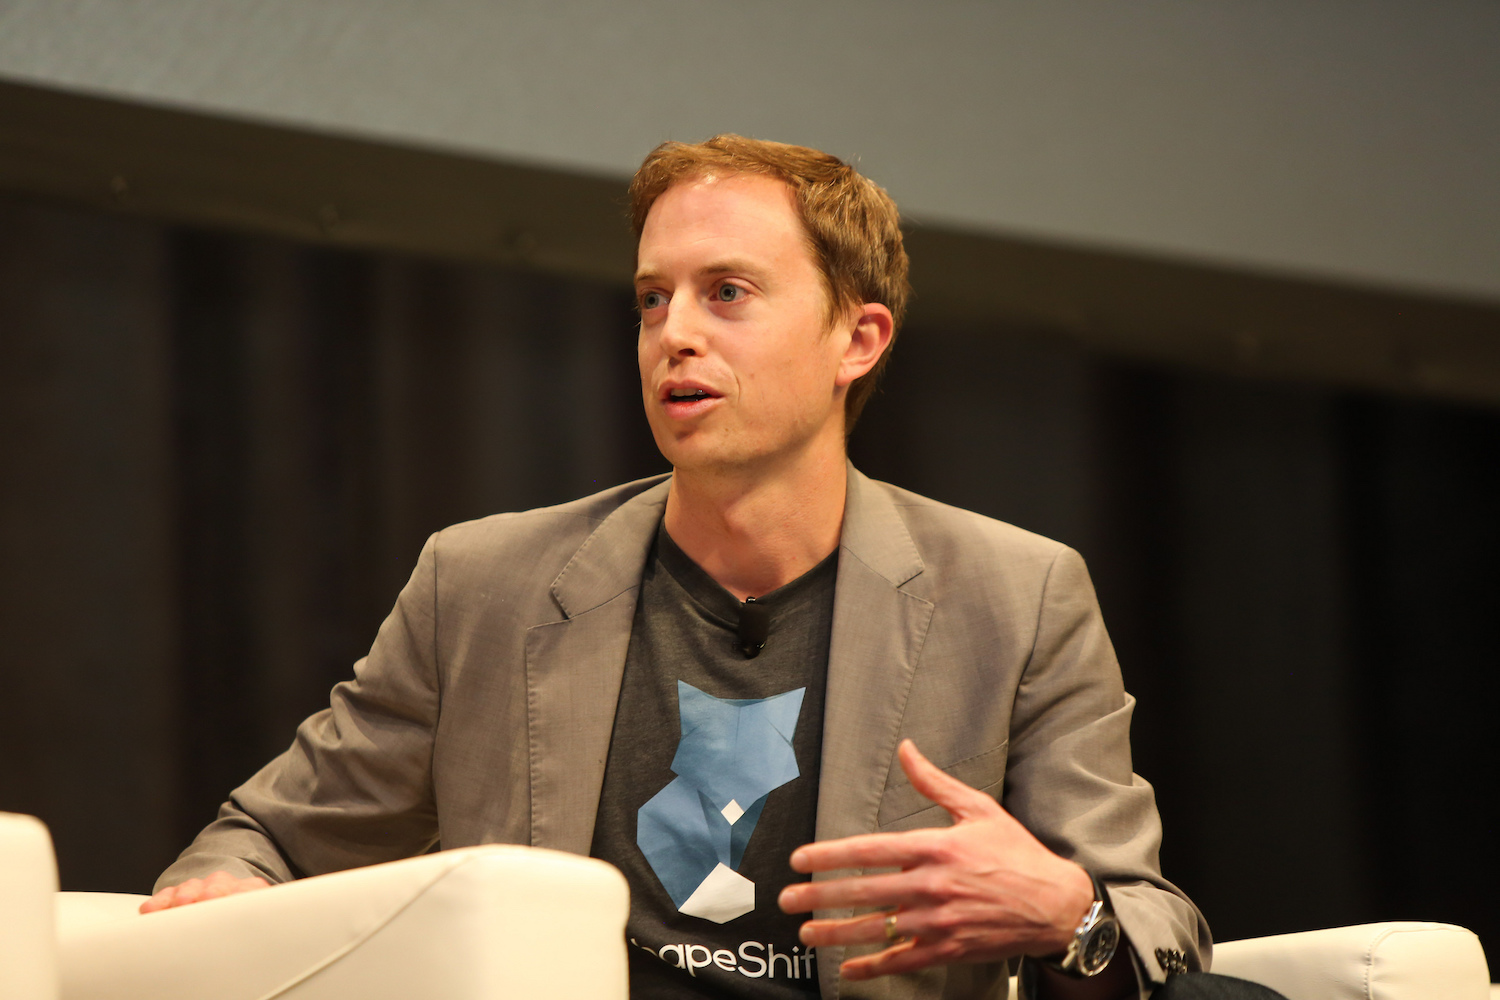 WSJ's ShapeShift Exposé Overstated Money Laundering by $6 Million, Analysis Says thumbnail